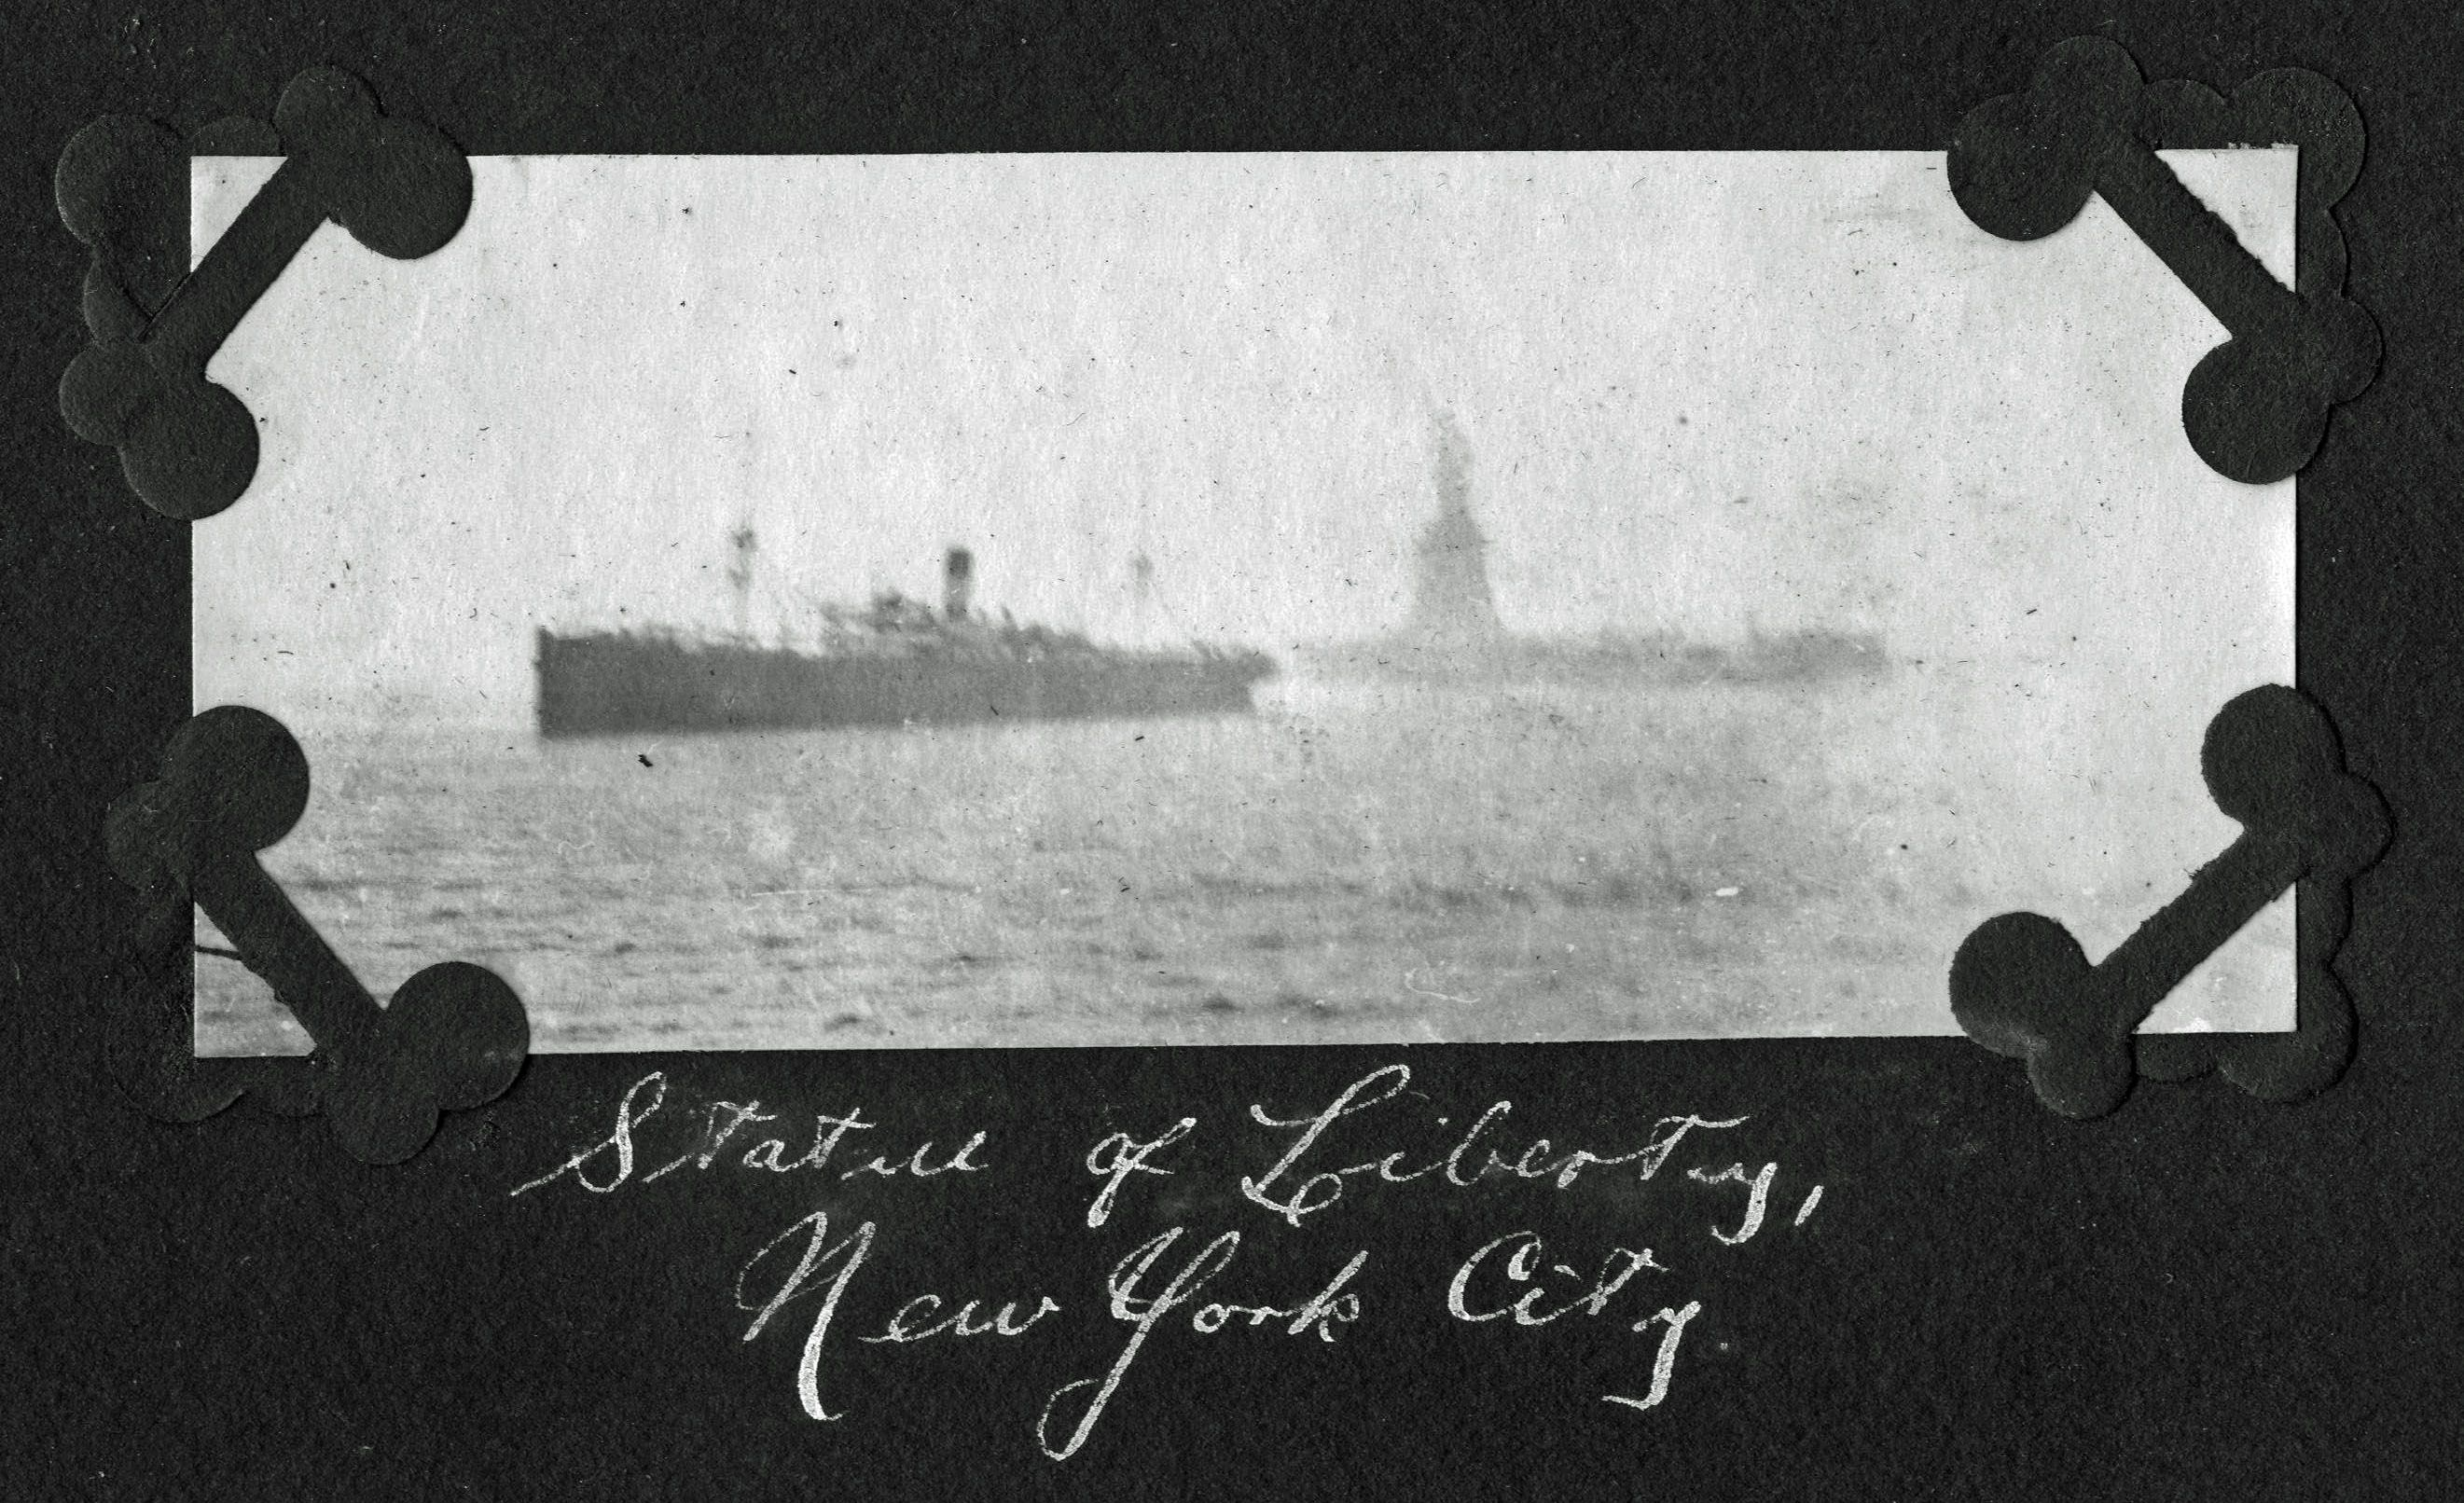 Satatue Of Liberty With Puartarican Flag Tattoo: The Statue Of Liberty, From The Steamship Leaving NYC To